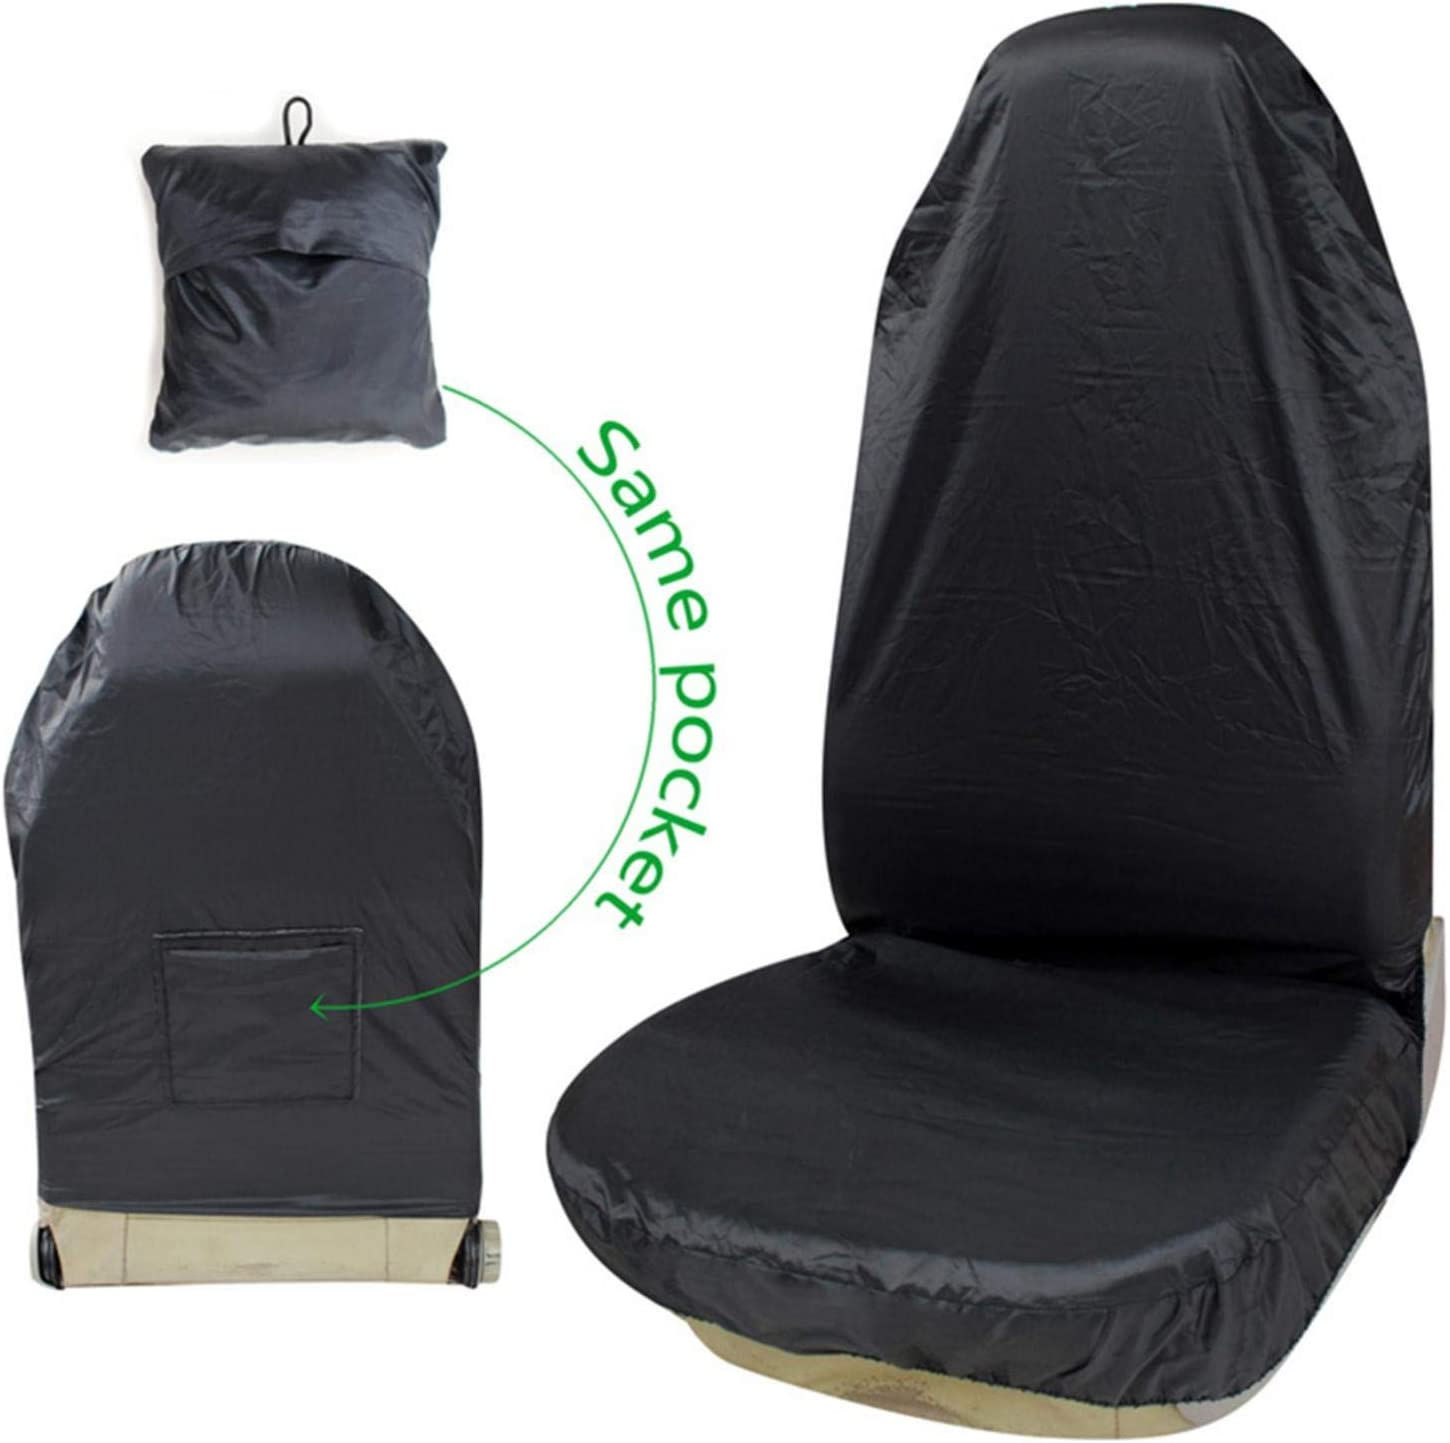 Water Resistant Bucket Seat Protector Waterproof Front Seat Covers Easy to Install and Remove Ultra-Light pet Waterproof and Dustproof Protector Easy to Clean